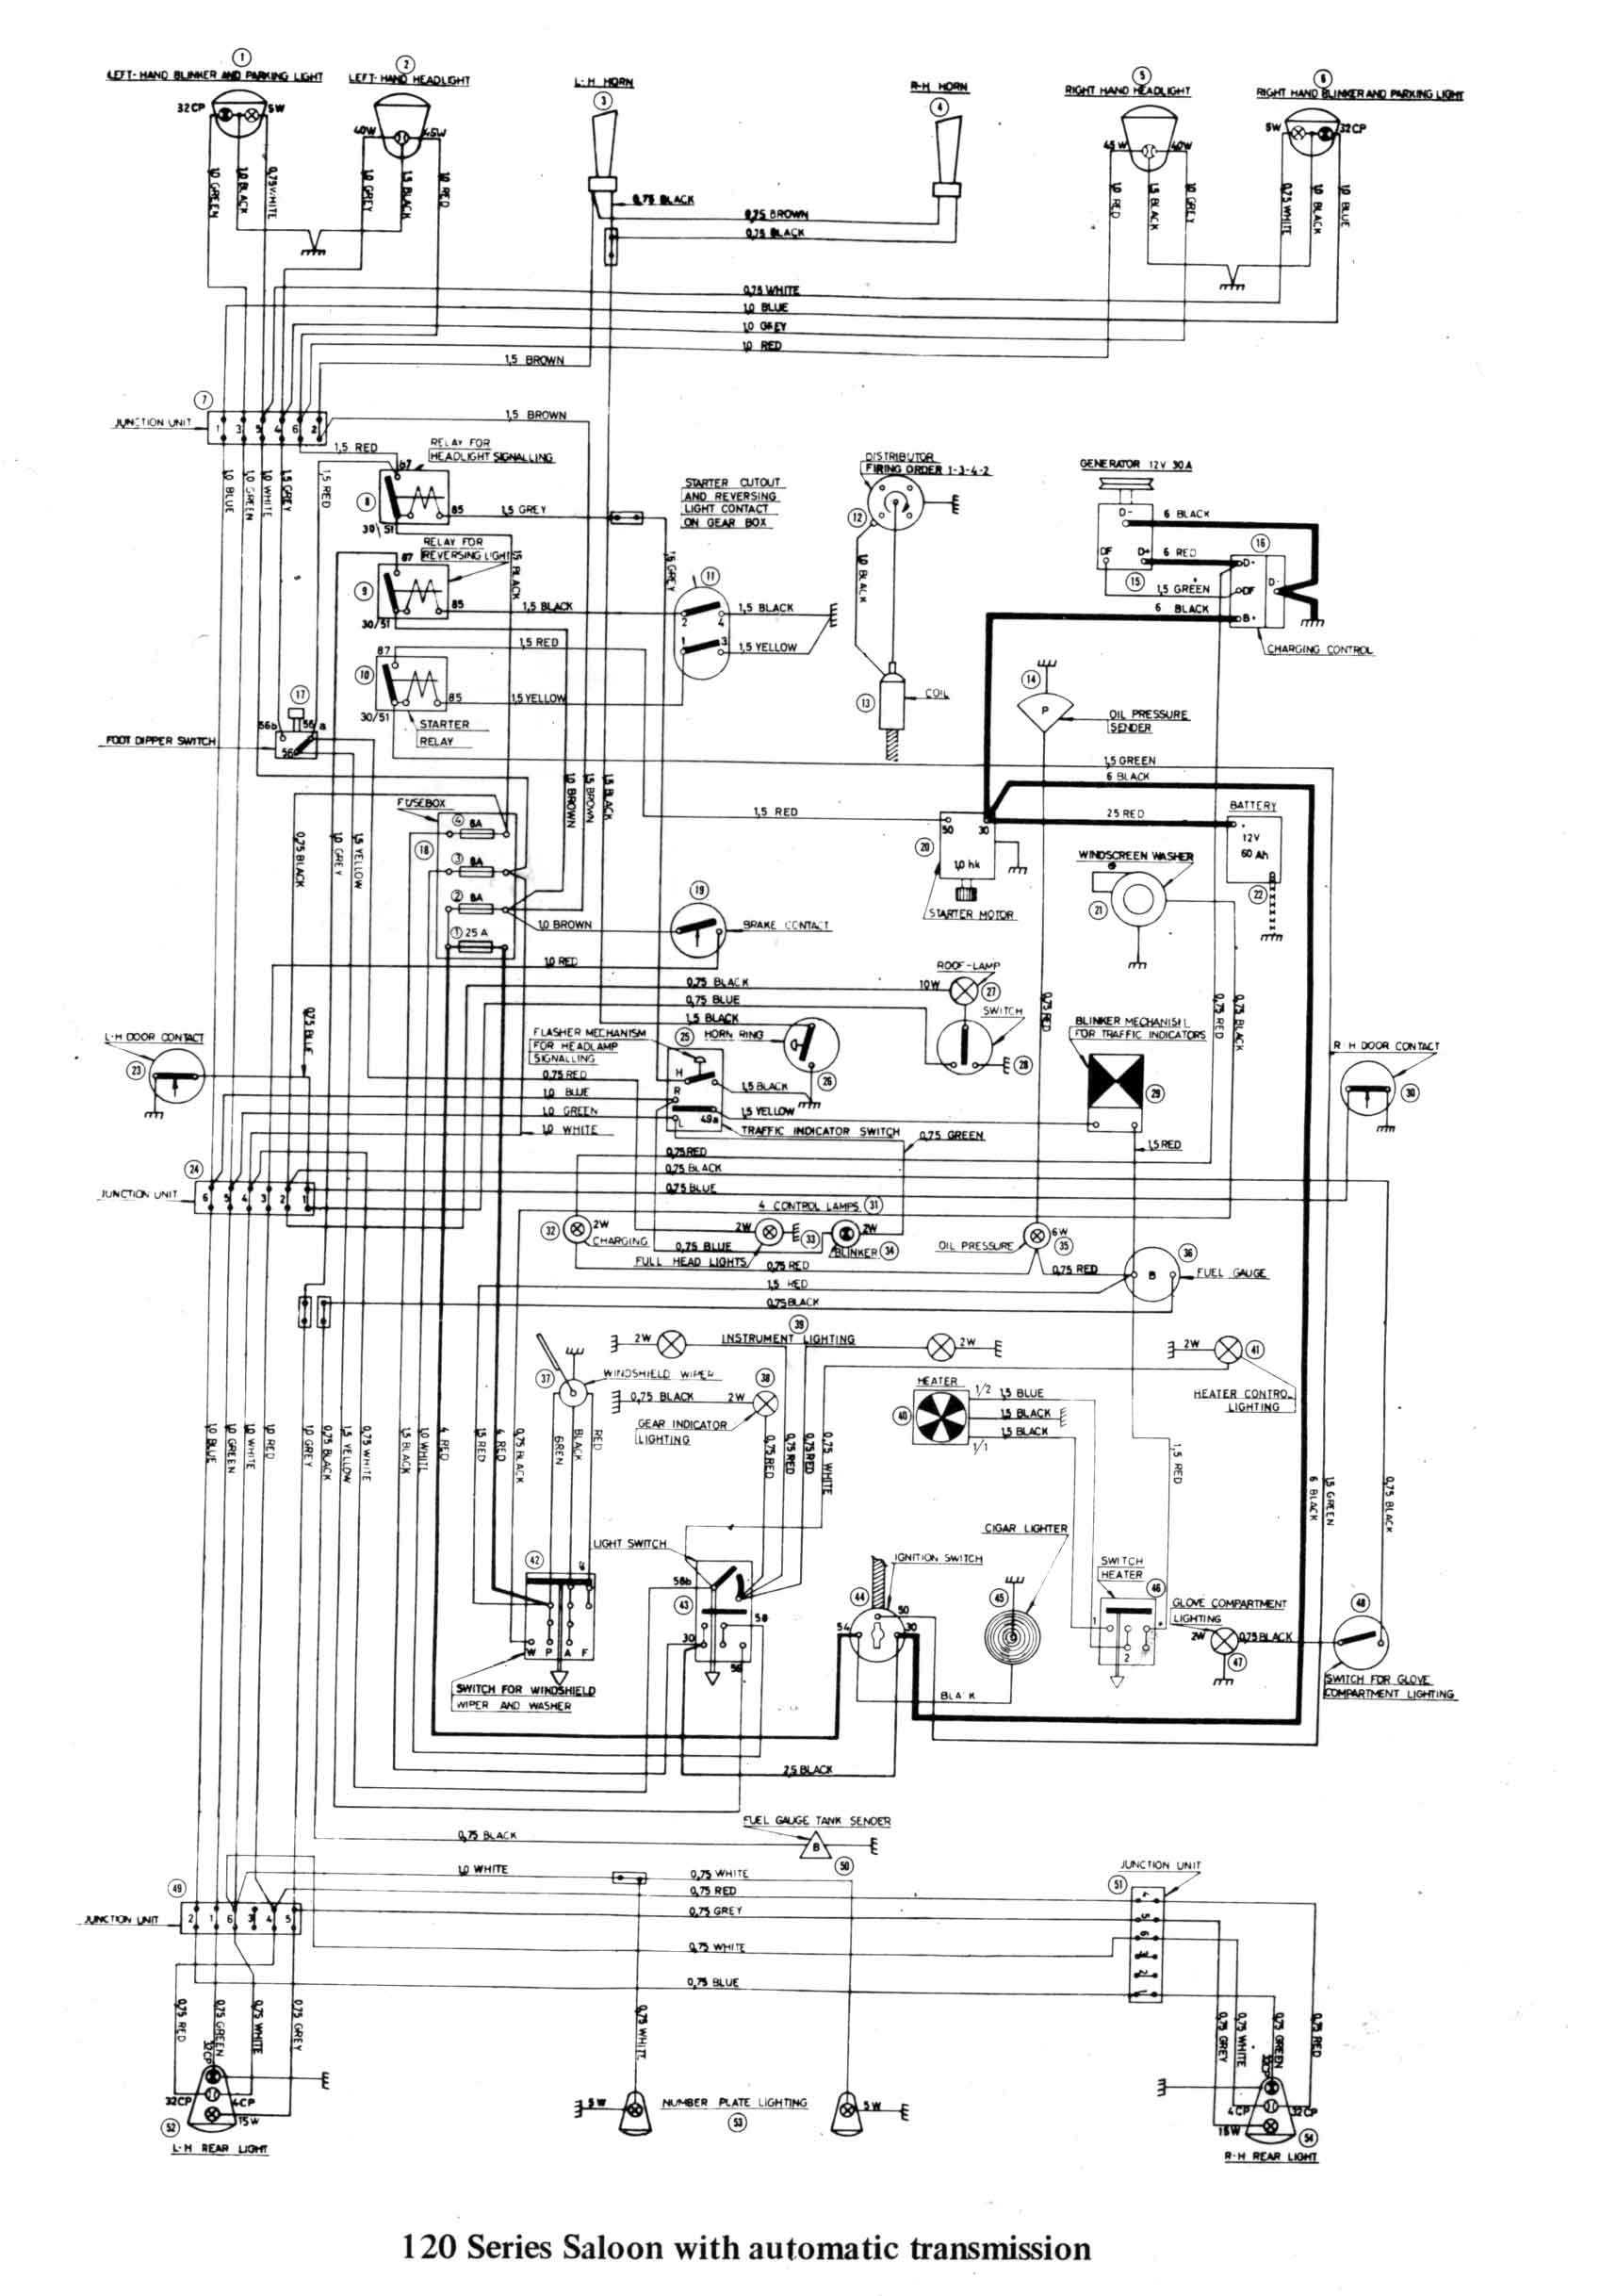 1995 Volvo Semi Truck Wiring Not Lossing Diagram 1996 Mazda Mpv 850 Download Third Level Rh 8 4 16 Jacobwinterstein Com Ford L9000